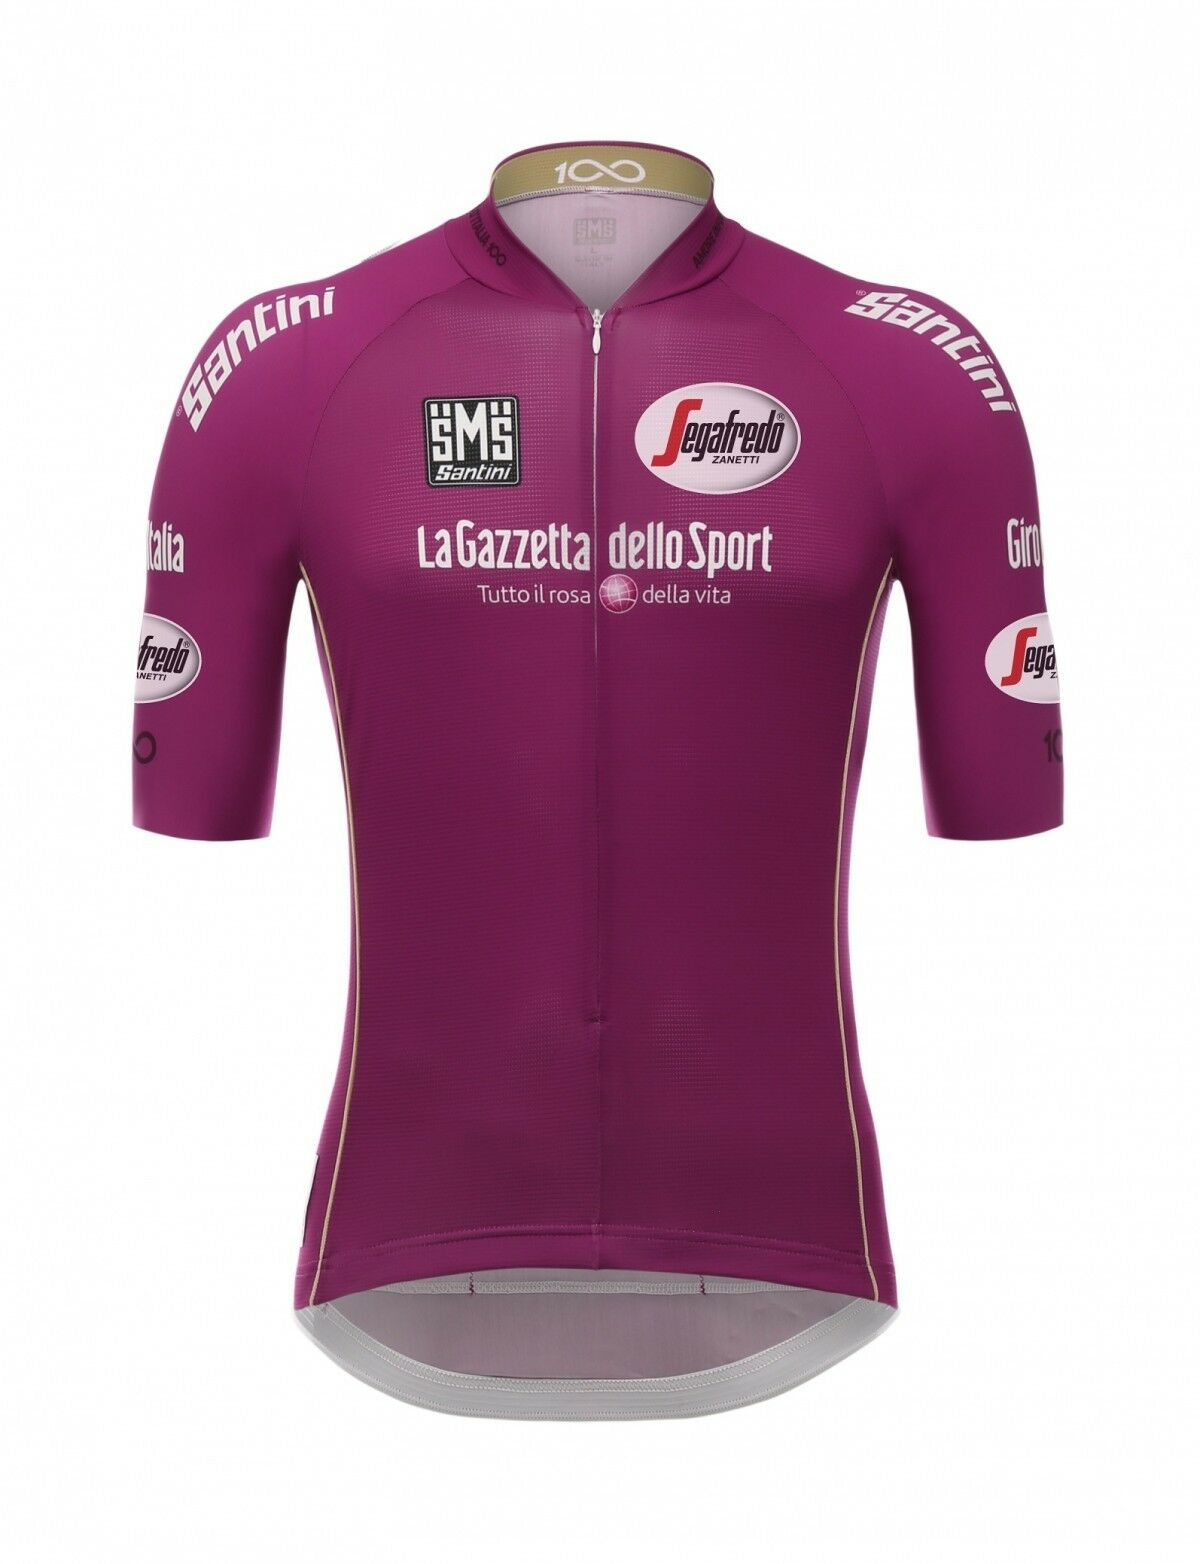 2017 GIRO D'ITALIA Point Leaders Ciclamen (Sprinter) Cycling Jersey by Santini